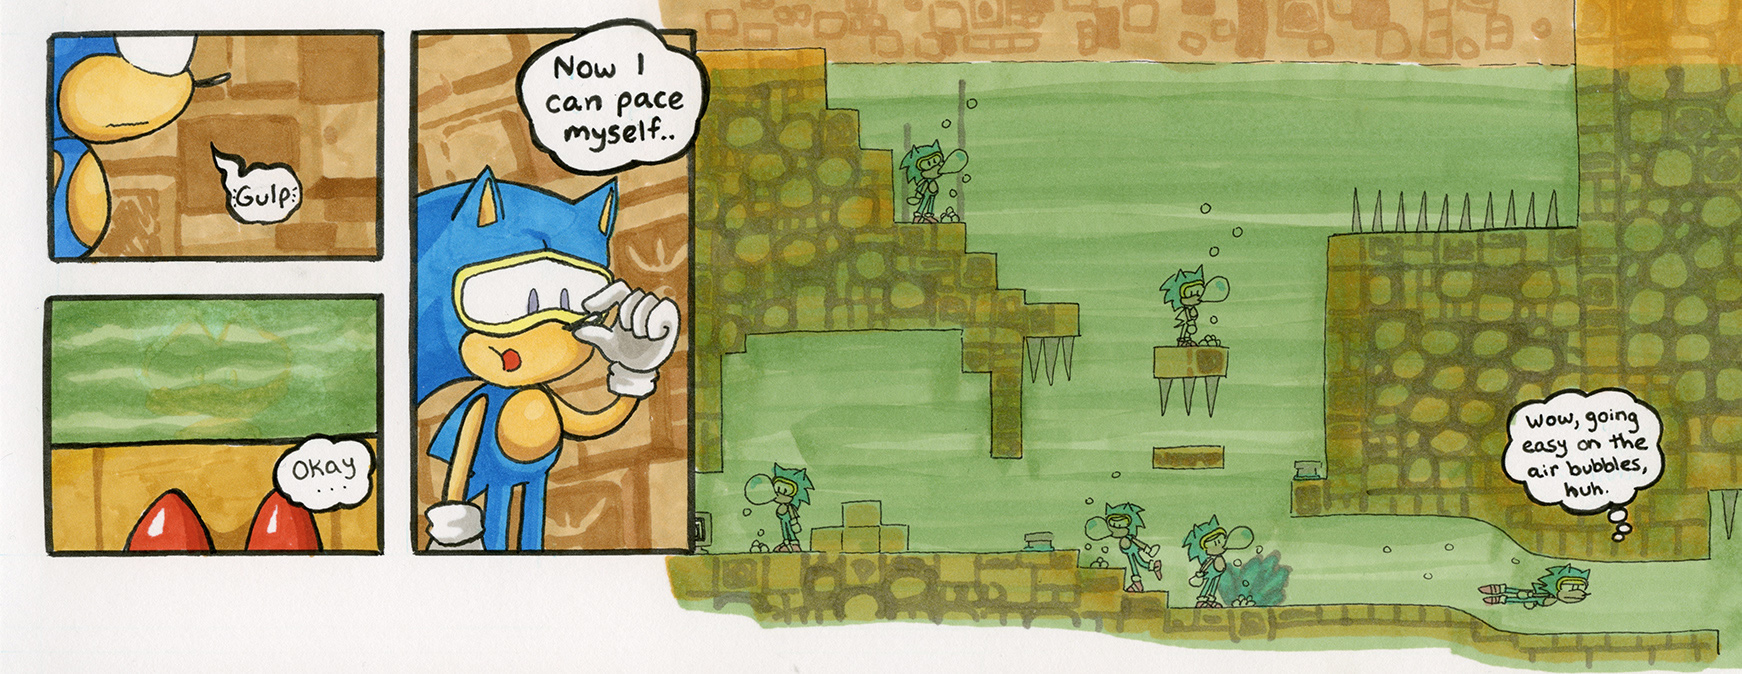 Sonic the Hedgehog 1: Labyrinth Zone, Act 1